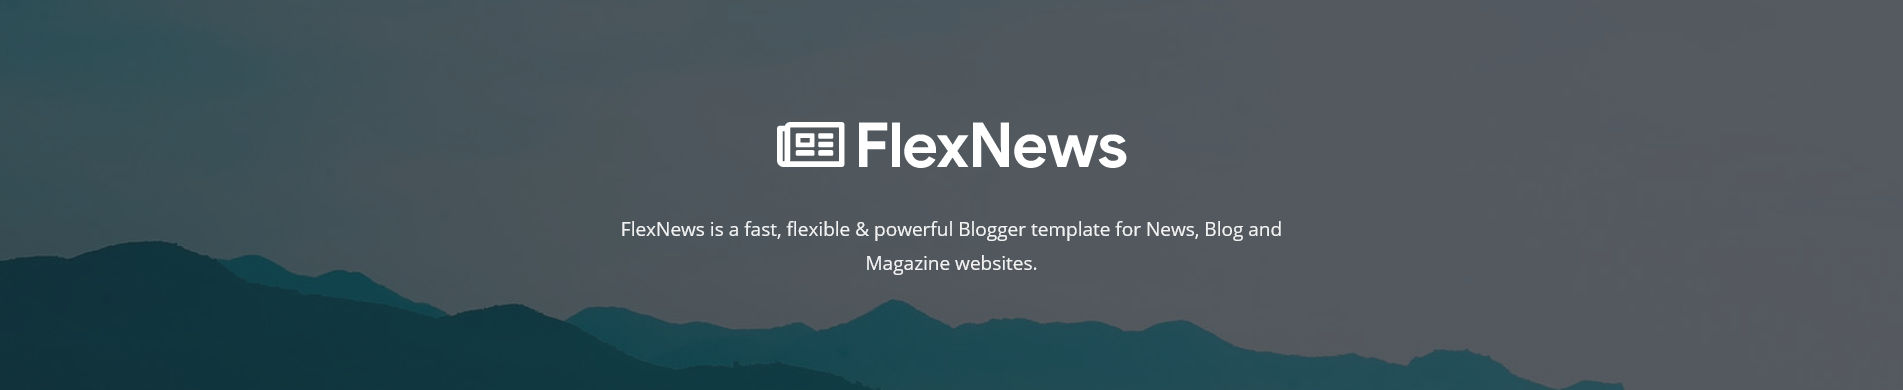 [Free Download] FlexNews - Responsive Blog  - BigNulled  FlexNews is a fast, flexible & powerful Blogger template for News, Blog and Magazine websites. FlexNews is totally customizable allowing you to create new   [Download] FlexNews - Responsive Blog & Magazine Blogger   19-Jun-2019 — Free Download FlexNews – Responsive Blog & Magazine Blogger Template (Nulled) [Latest Version] FlexNews is a fast, flexible & powerful   newspaper blogger template Free Download Envato Nulled   Zahraa - Lifestyle Blog & Magazine Blogger Template. This is not a  November 02, 2020 04:30 AM. 0. 35. 10.0. 330. FREE. Login to download  FlexNews is a fast, flexible & powerful Blogger template for News, Blog and Magazine websites.  [Free Download] FlexNews - Responsive Blog  - NullPress  19-Jun-2019 — FlexNews is a fast, flexible & powerful Blogger template for News, Blog and Magazine websites. FlexNews is totally customizable allowing you to   Download FlexNews - Responsive Blog & Magazine Blogger   19-Jun-2019 — Free download FlexNews - Responsive Blog & Magazine Blogger Template Nulled. It is developed by templateifydotcom on ThemeForest.  Flexnews Blogger Template Responsive and Seo Optimized   Mar 21, 2020 - Flexnews blogger template is responsive and seo optimized theme. You can use this blogger theme for magazine and news related blog.  FlexNews - Responsive Blog & Magazine Blogger Template  FlexNews is a fast, flexible & powerful Blogger template for News, Blog and Magazine websites.  FlexNews - Responsive Blog & Magazine Blogger Template   FlexNews is a fast, flexible & powerful Blogger template for News, Blog and Magazine websites. FlexNews is totally customizable allow  FlexNews Premium - Responsive Blog & Magazine Blogger   FlexNews Premium - Responsive Blog & Magazine Blogger Templates.  FlexNews is a fast, flexible & powerful Blogger template for News, Blog and Magazine websites. FlexNews is totally  USD 9.00 · Main LinkDownload Now Server 2Second LinkDownload Now · [Free ] Ign